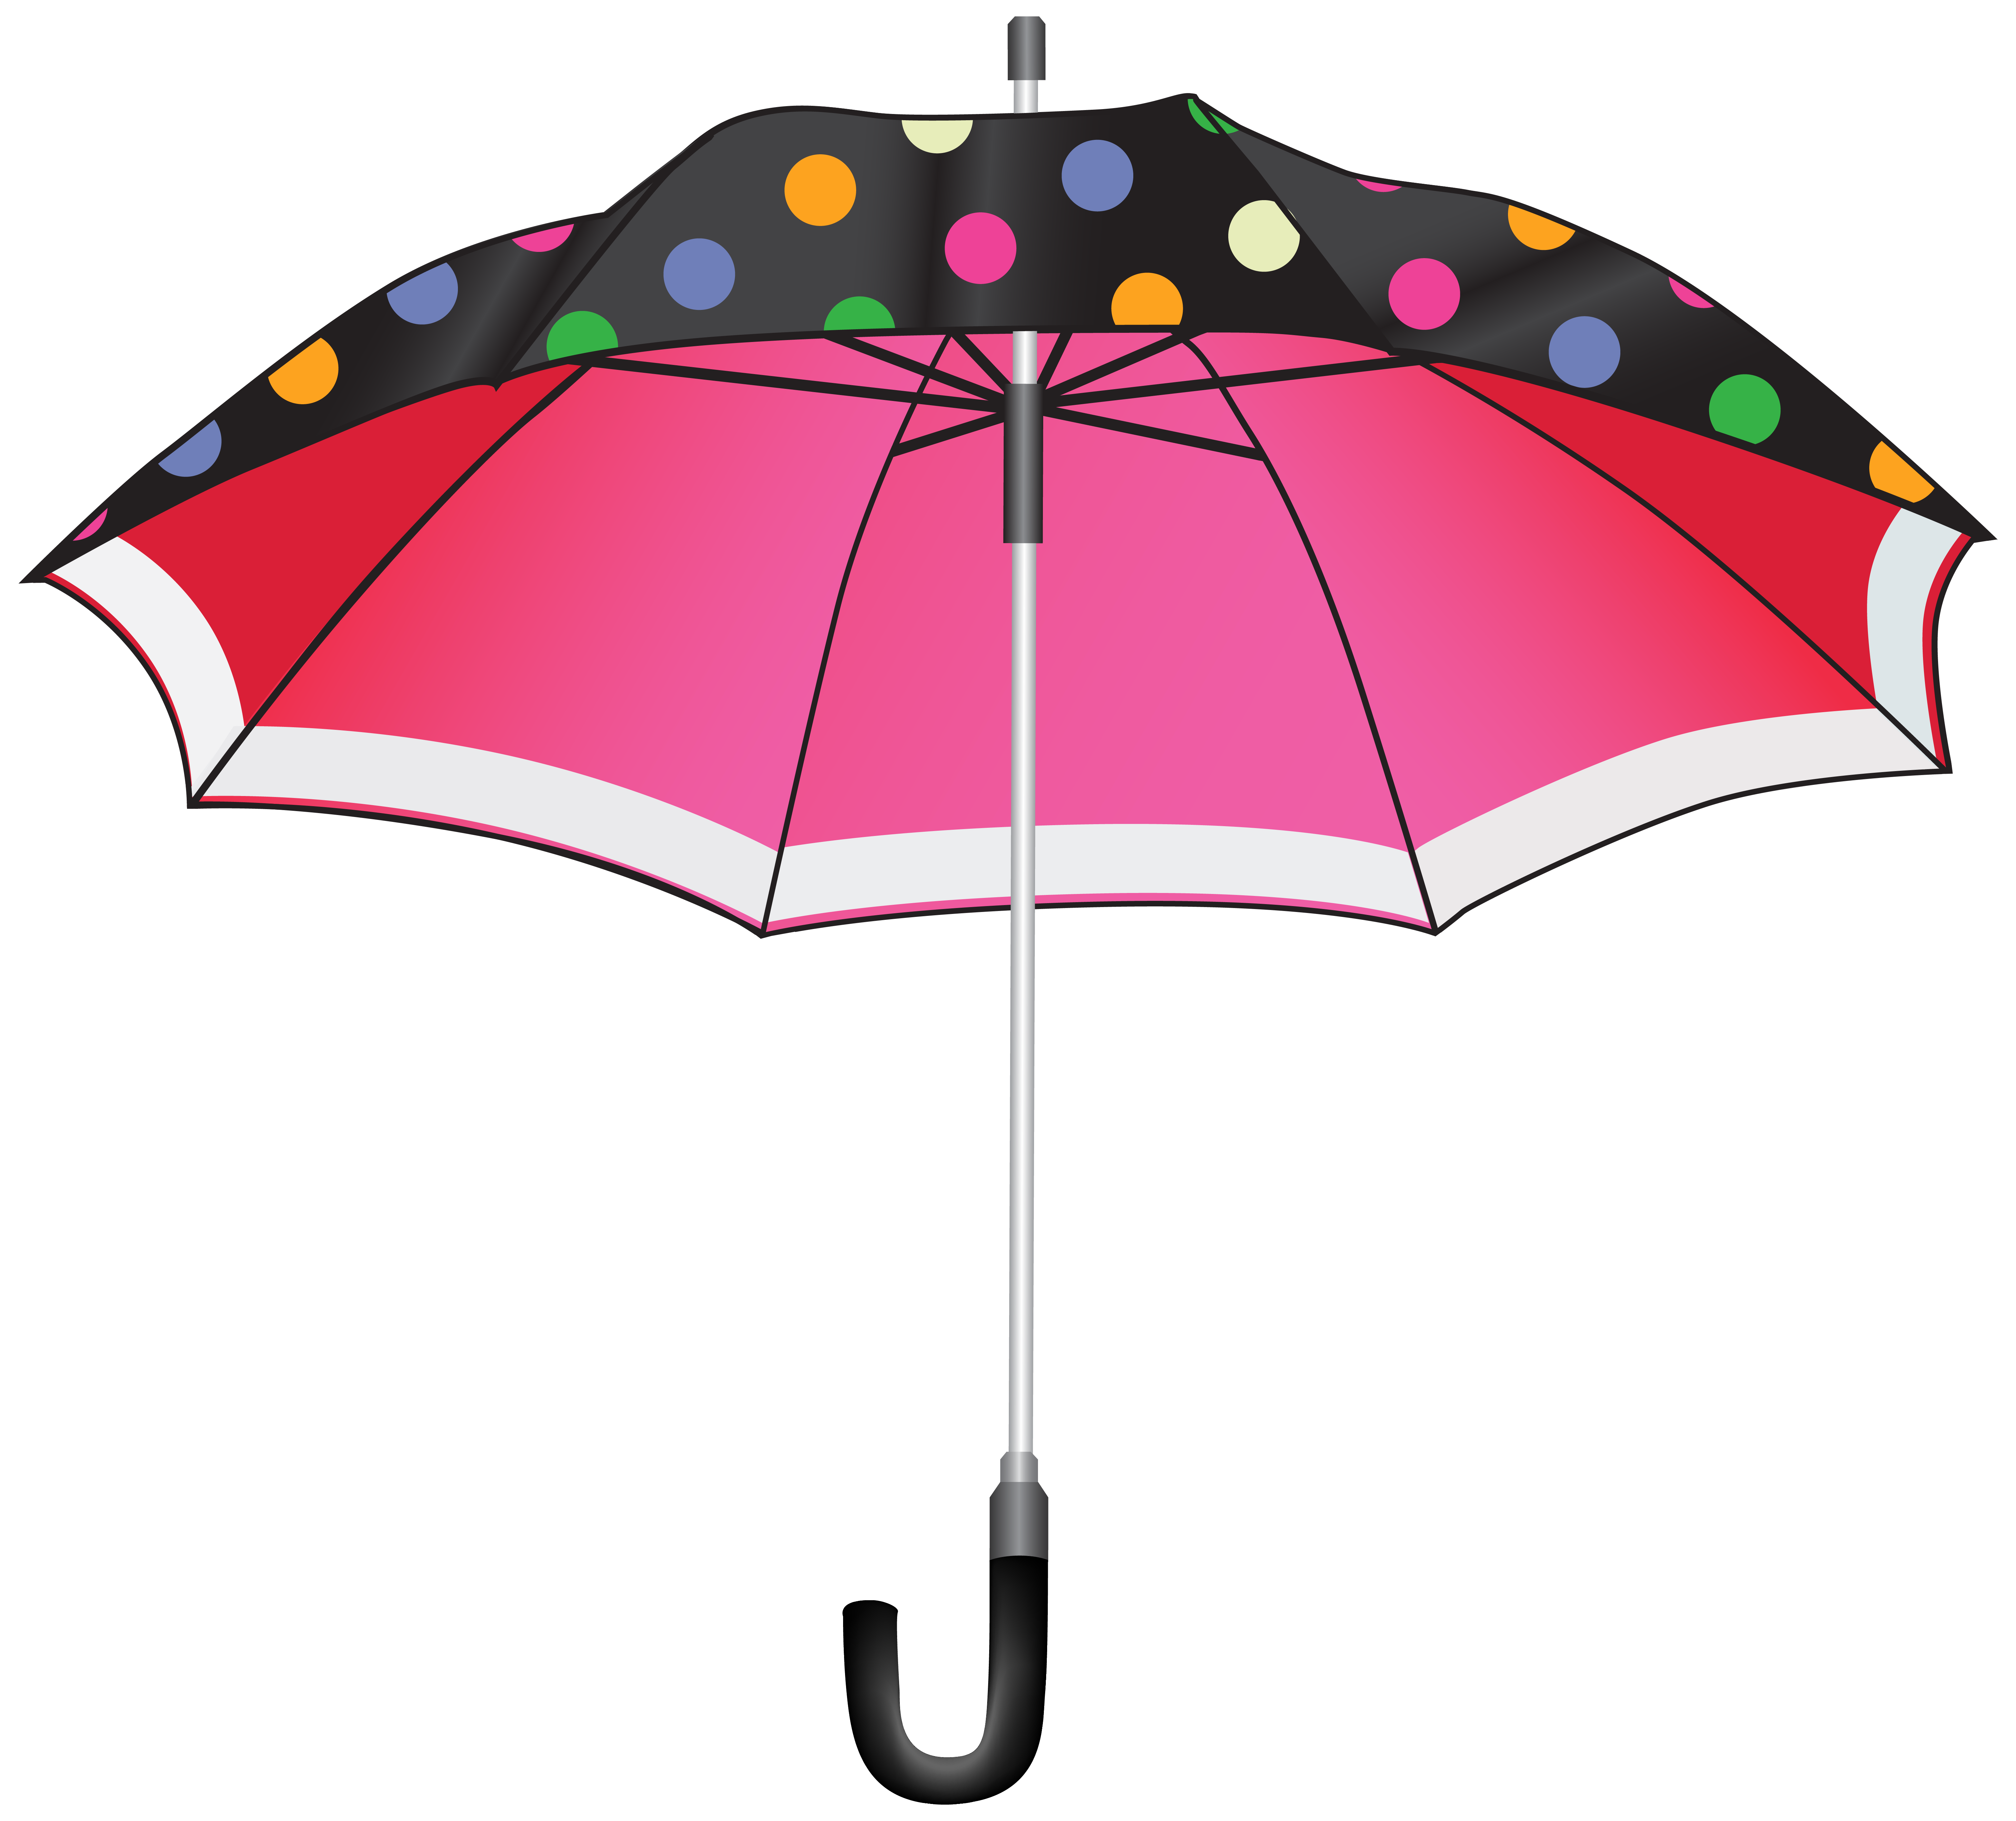 Umbrella clipart background banner library download Umbrella Clip art - rain png download - 6155*5559 - Free ... banner library download